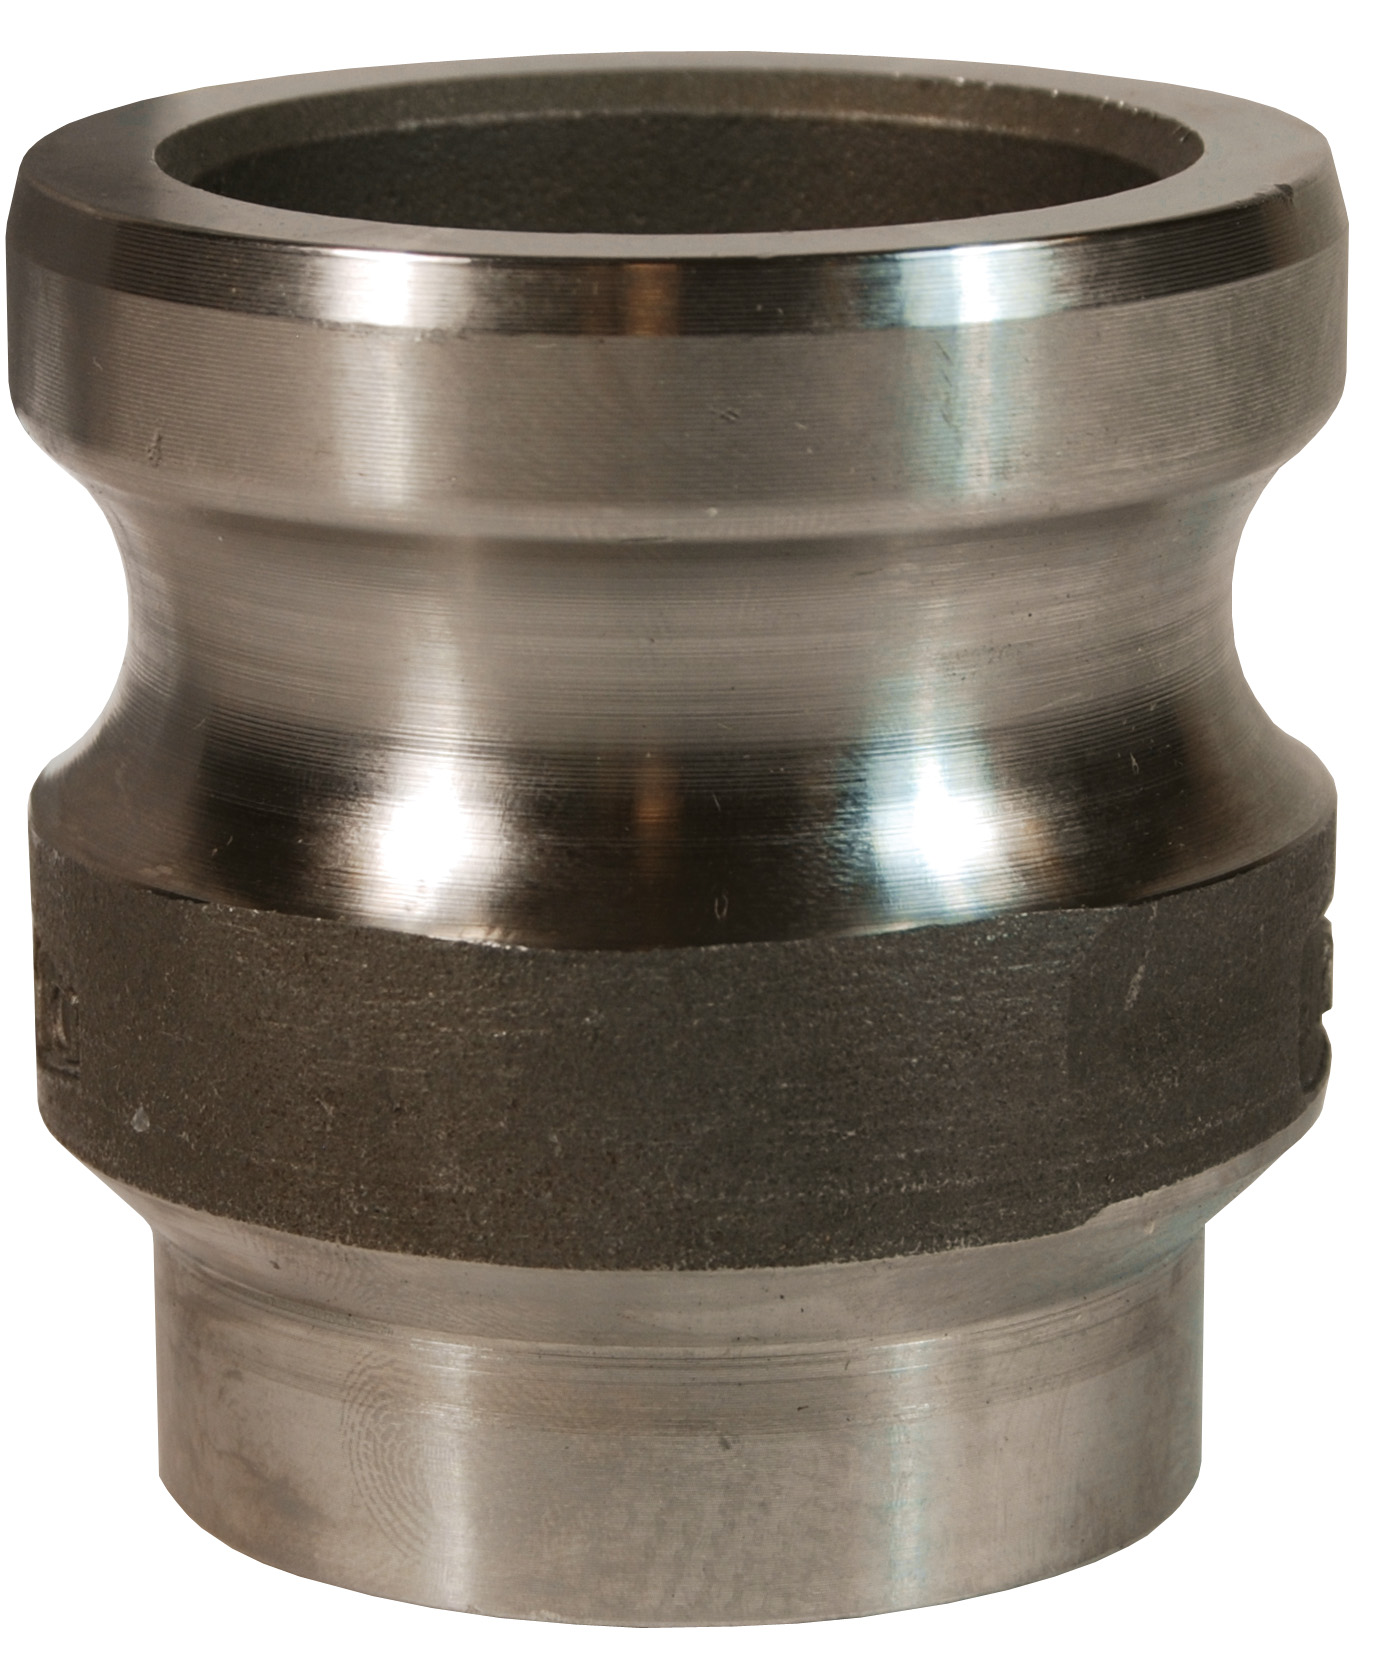 Cam Tube dixon cam & groove adapter x butt weld to tube end-re150bt - specialties company of freeport